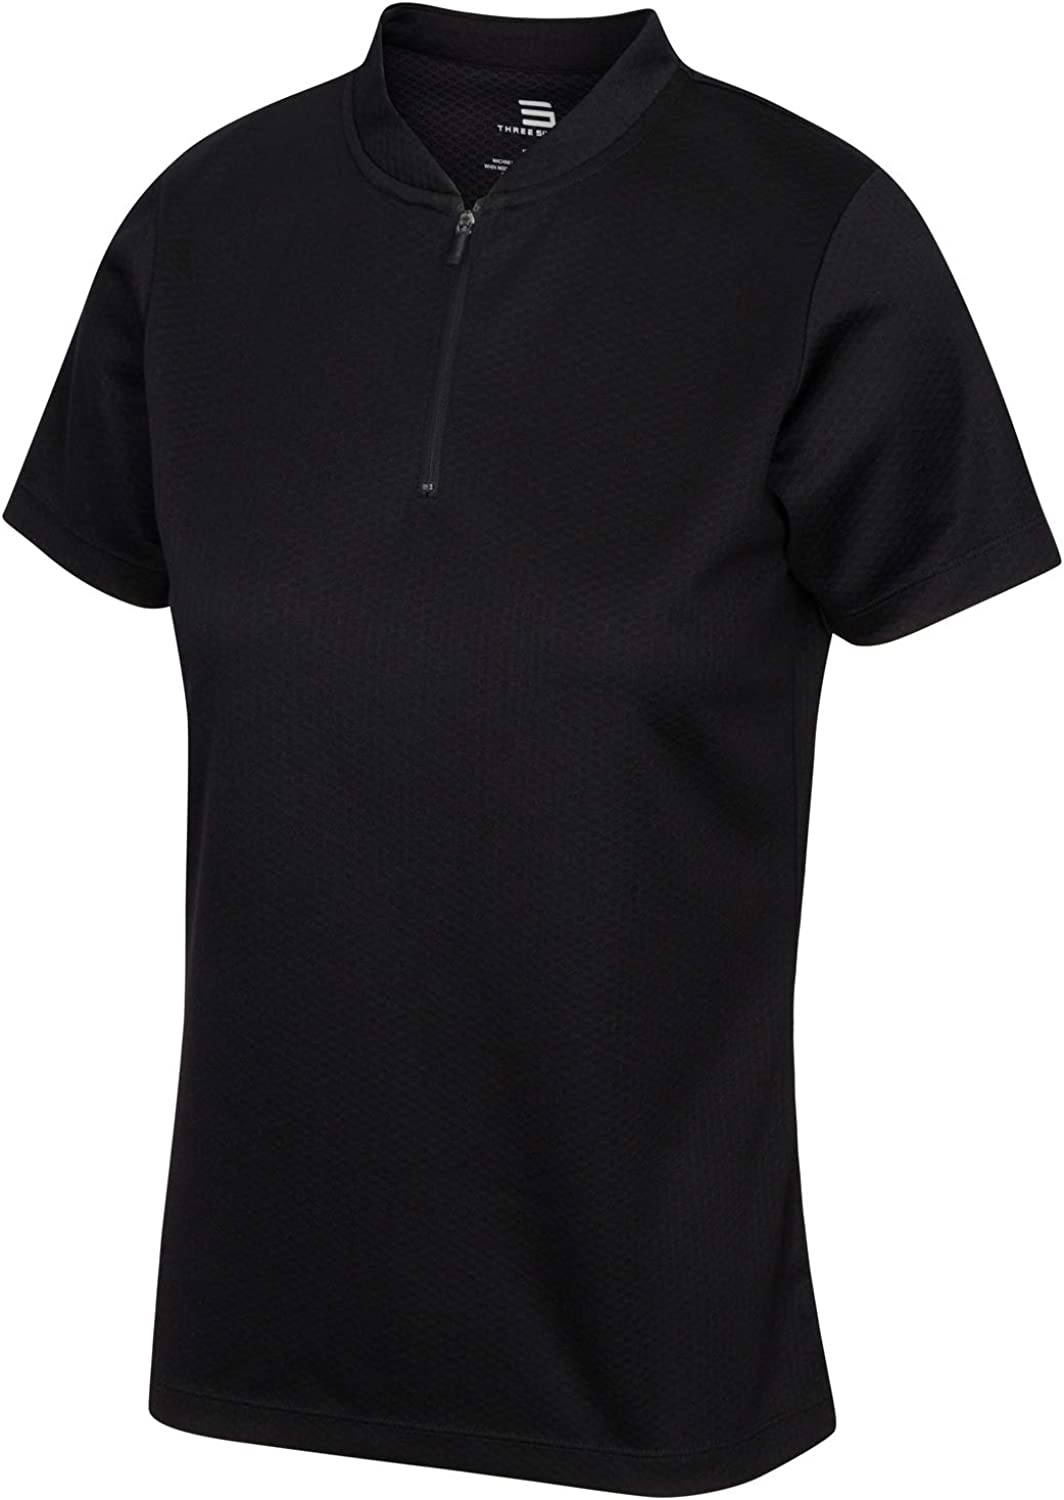 Womens Golf Polo with Zipper Short and Sleeve security favorite - Collarless